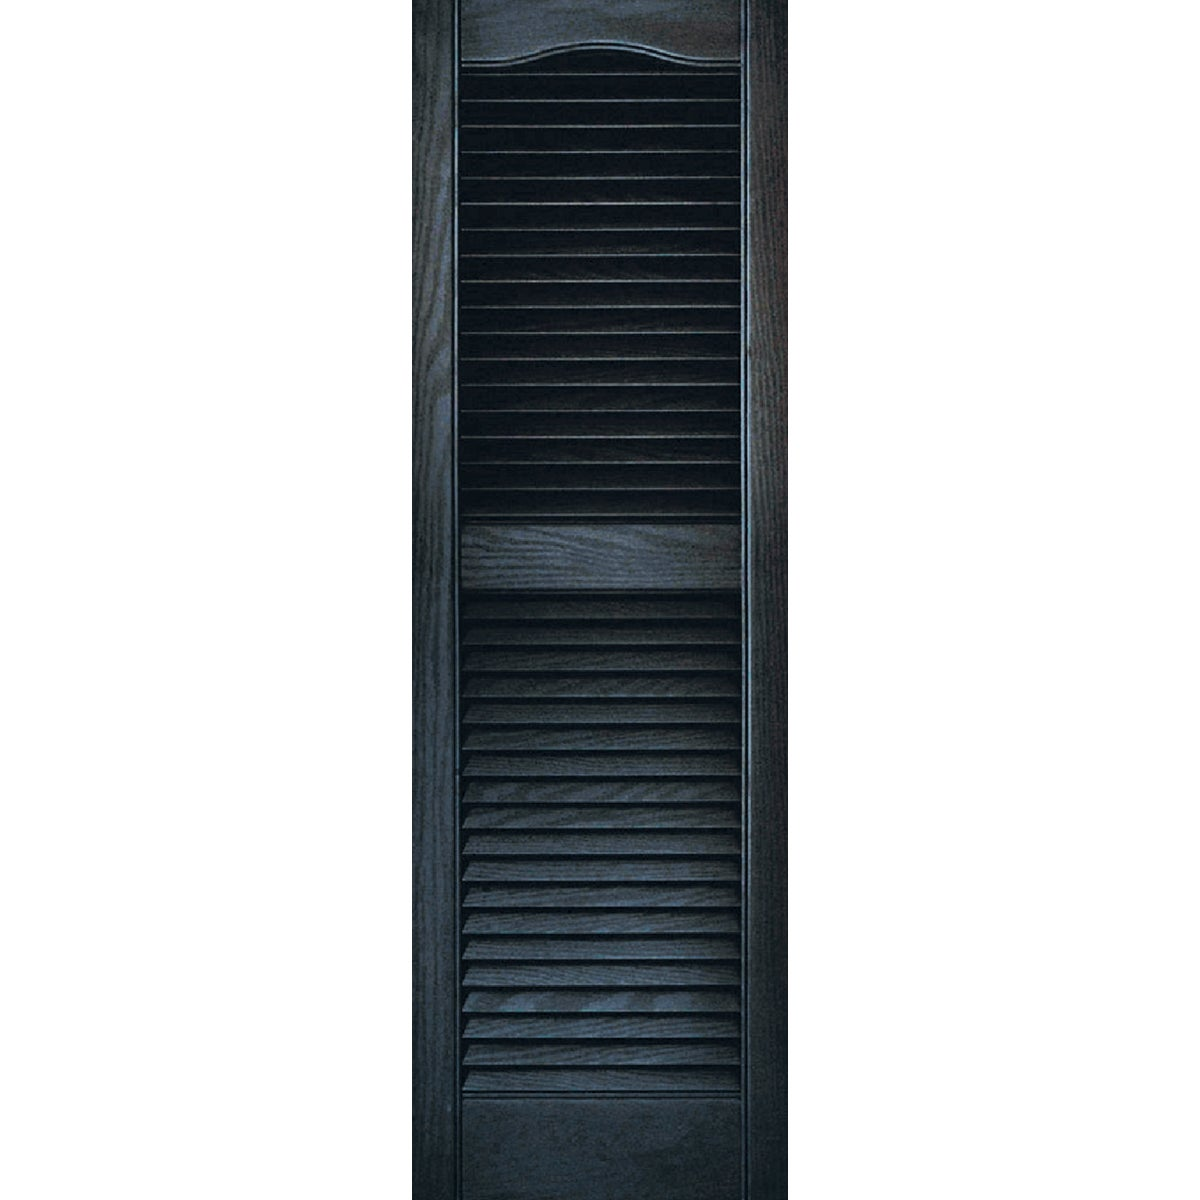 15X48 BLK LOUVER SHUTTER - 020140048002 by The Tapco Group